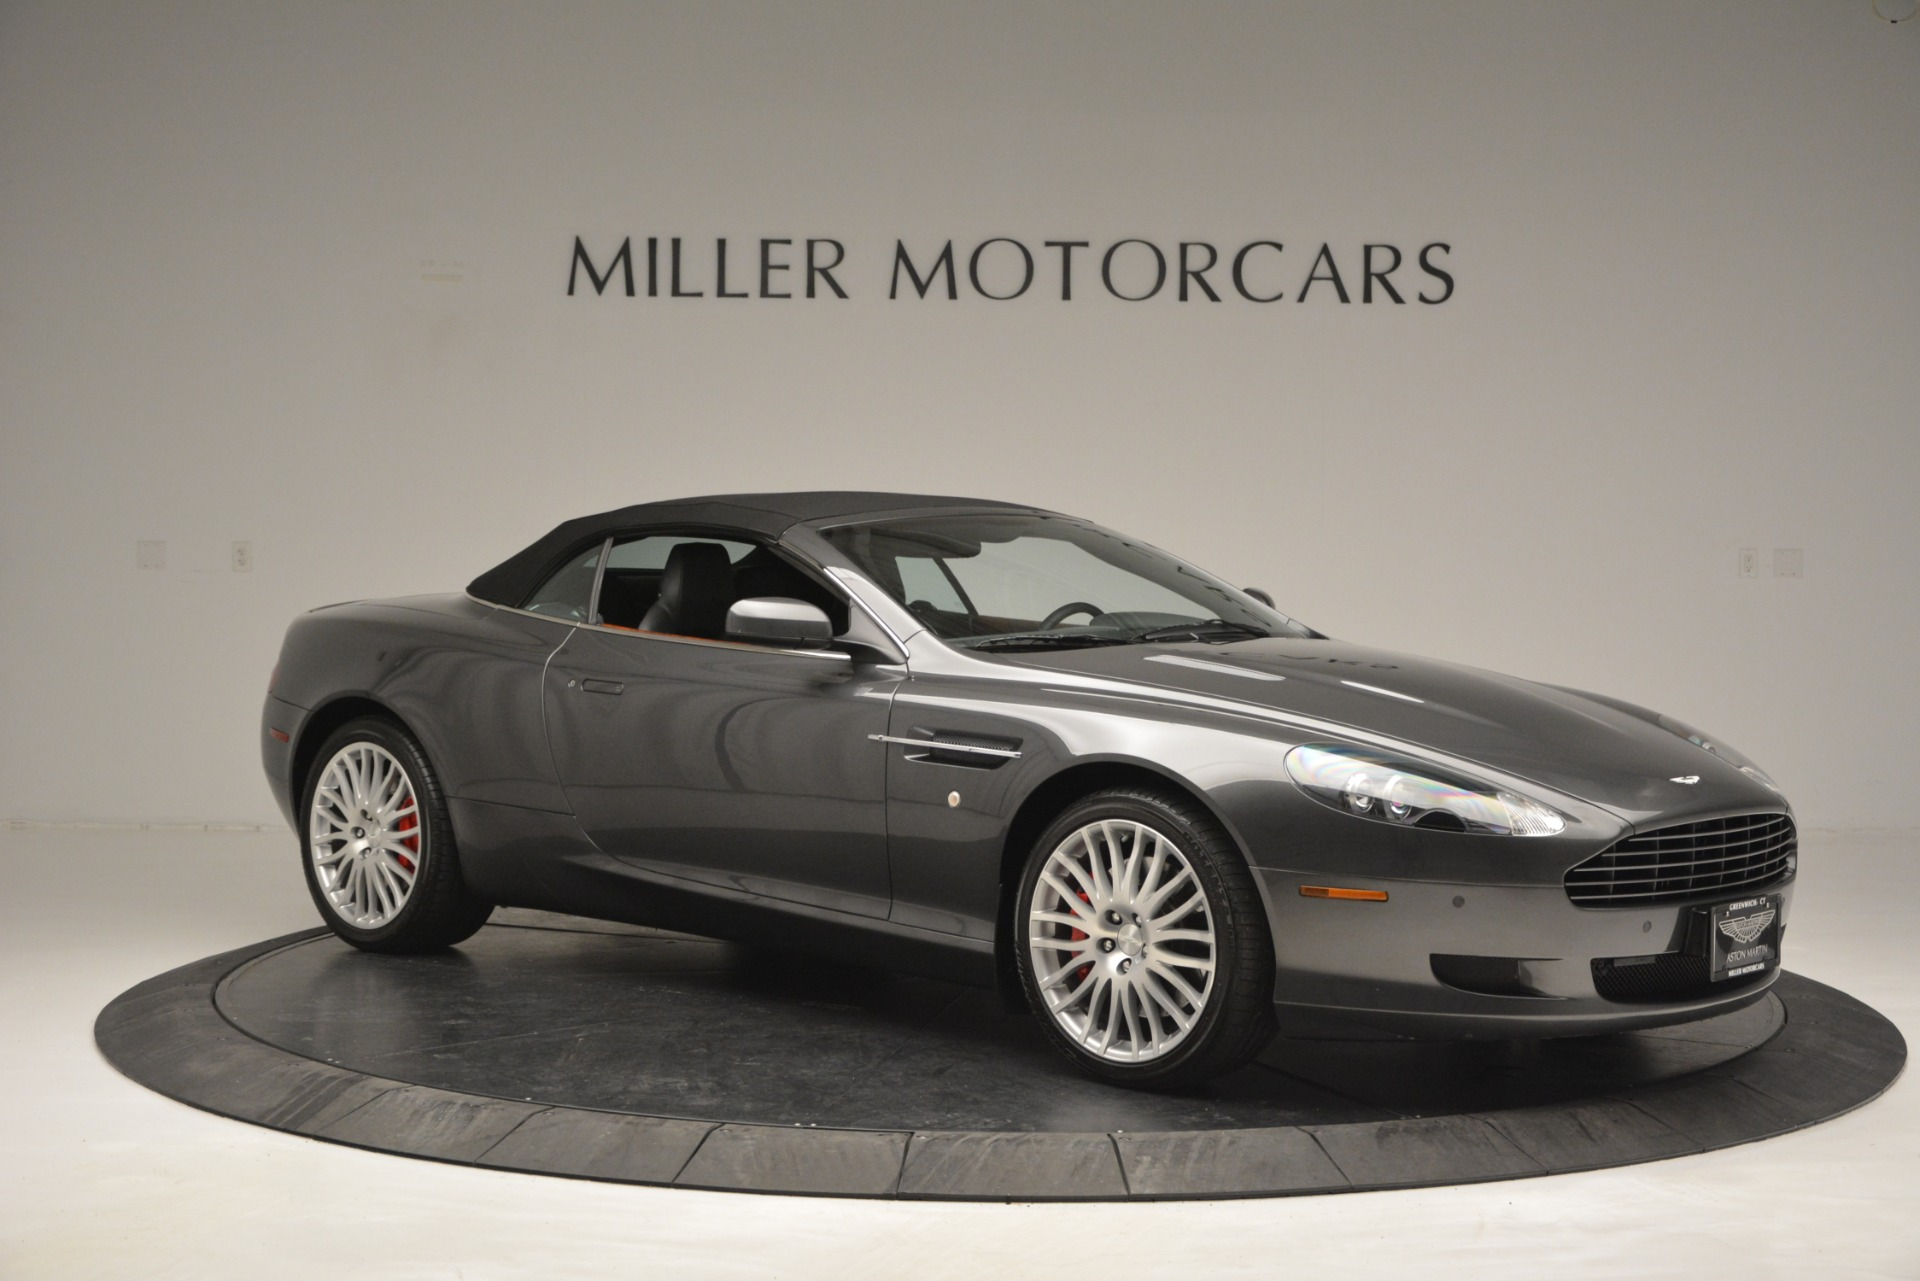 Used 2009 Aston Martin DB9 Convertible For Sale In Greenwich, CT 2930_p14